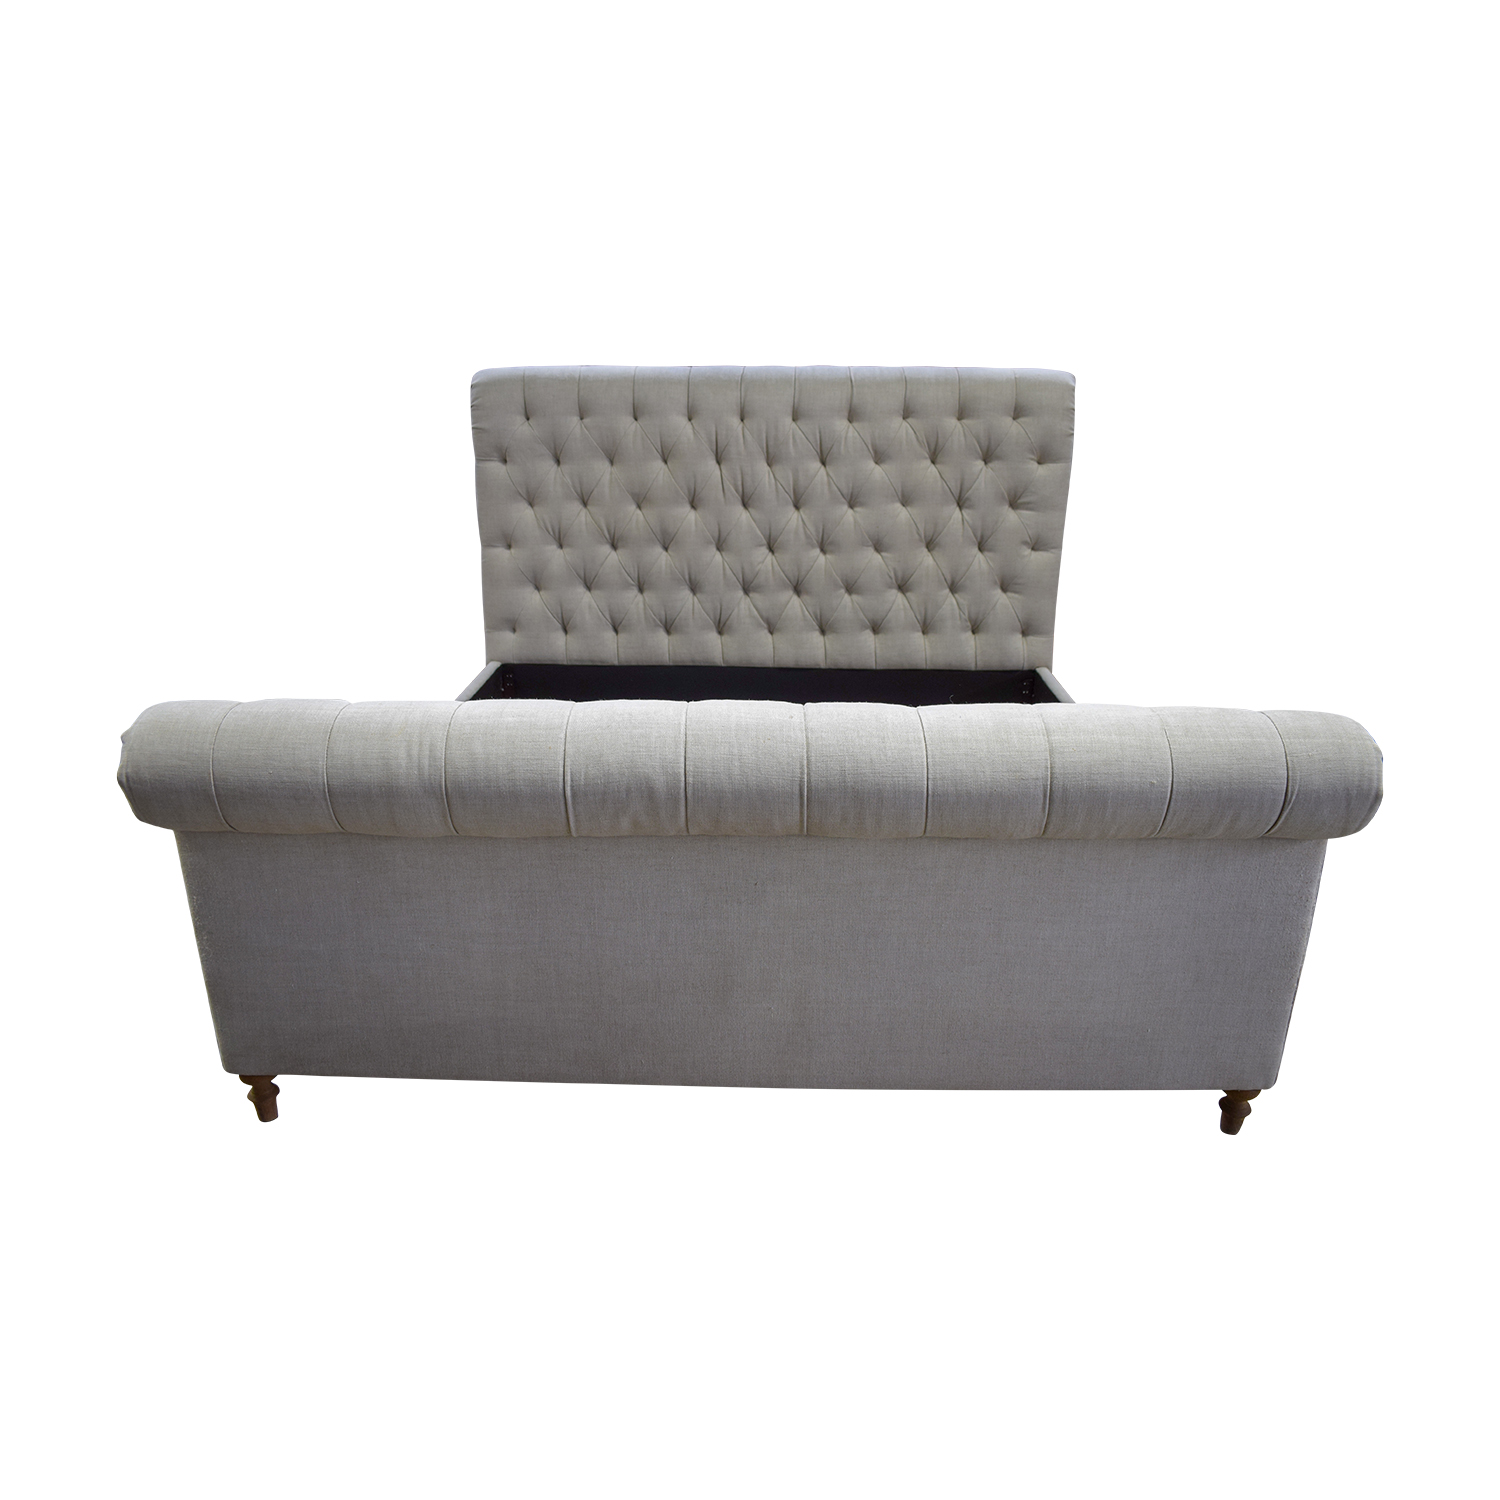 shop  King Tufted Sleigh Bed online